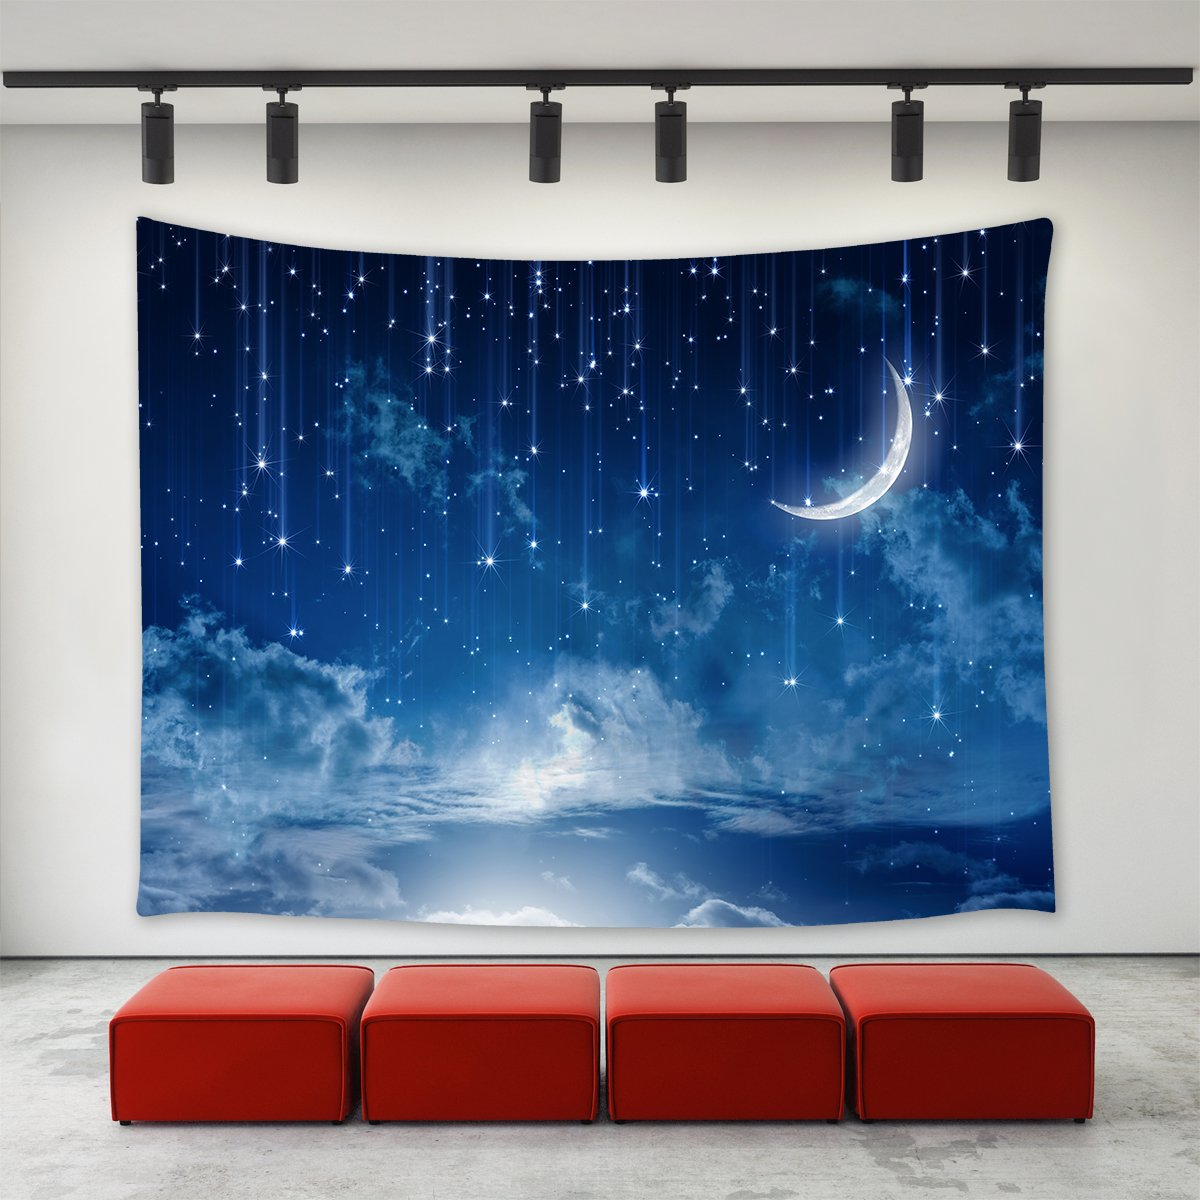 Starry night moon stars tapestry wall hanging night evening scenery moon and falling stars sky clouds tapestry home decoration wall decor art tapestries